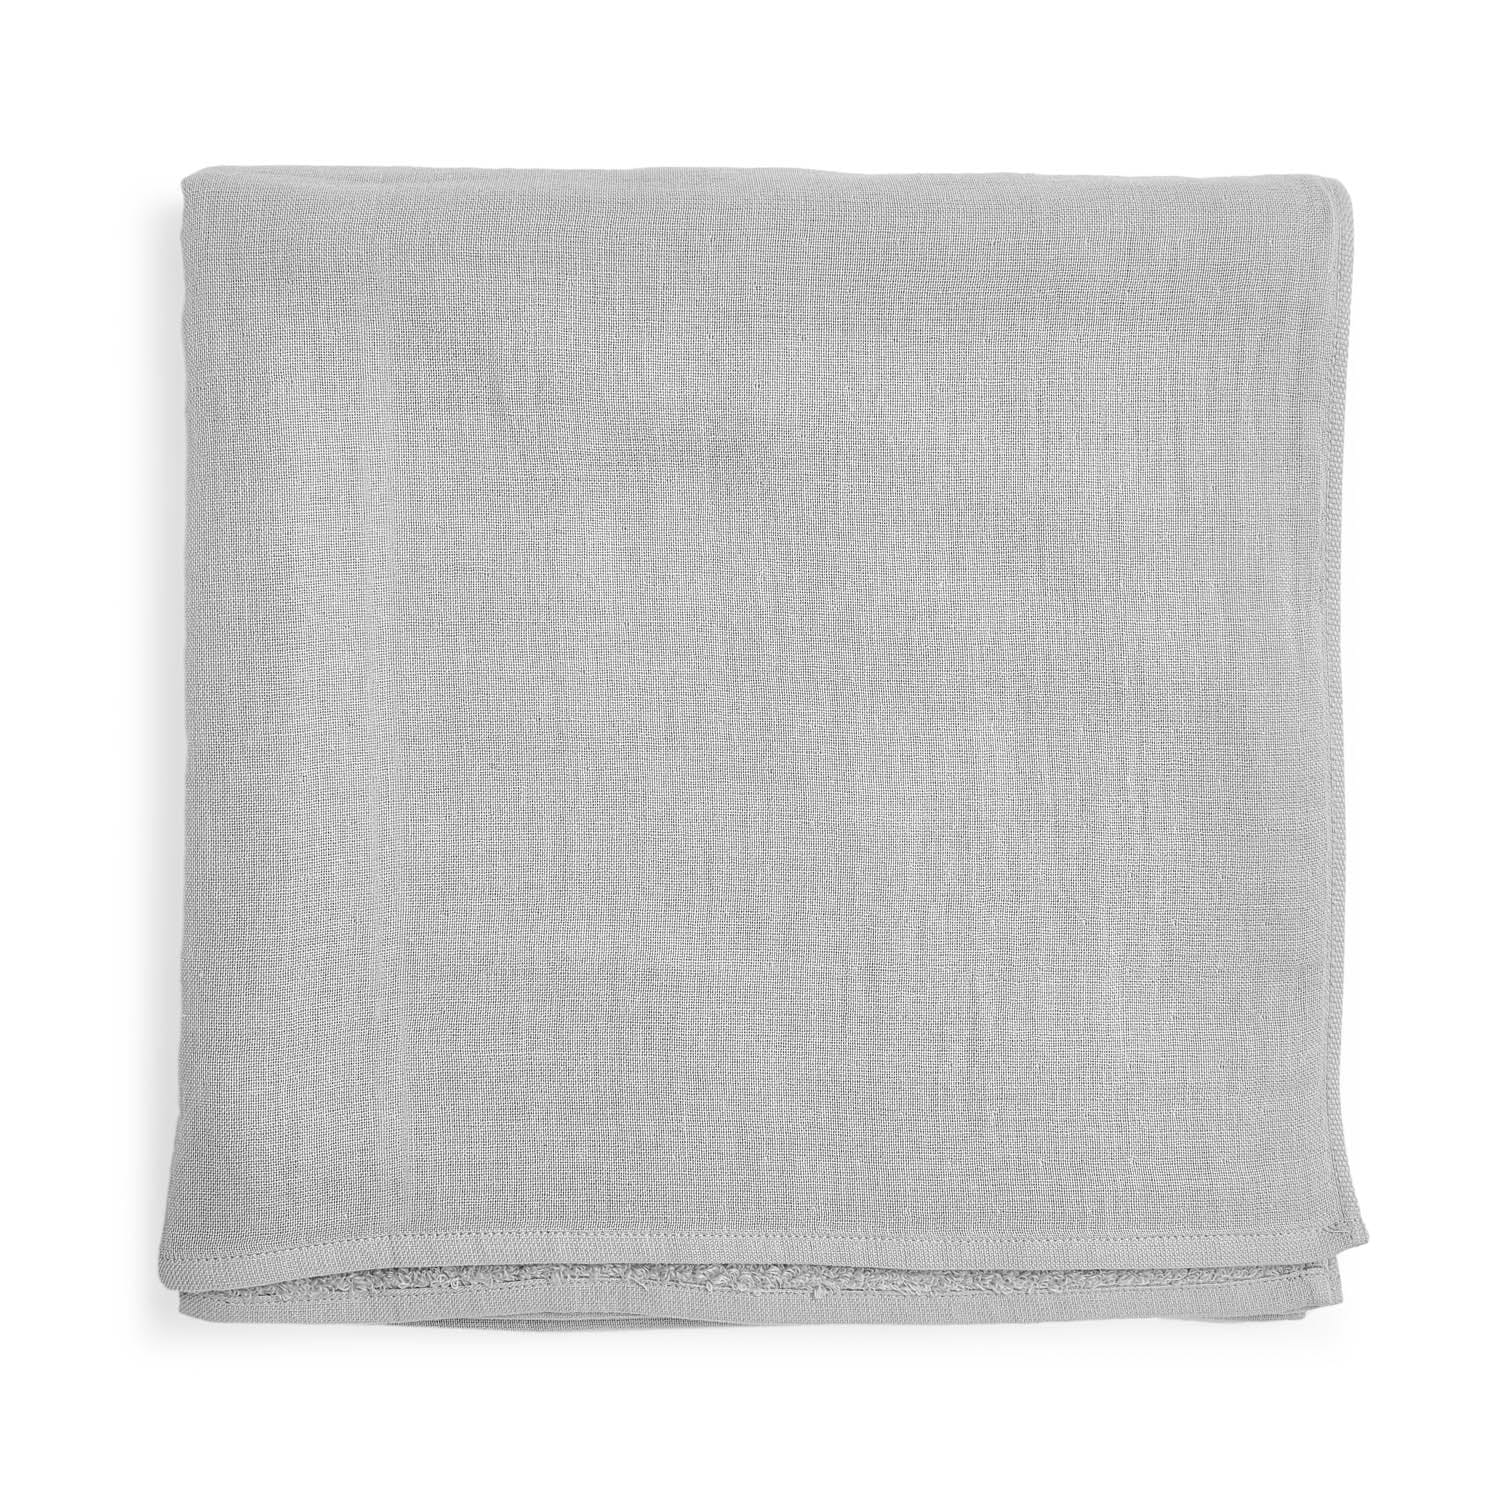 Uchino Gauze Bath Towel Light Gray